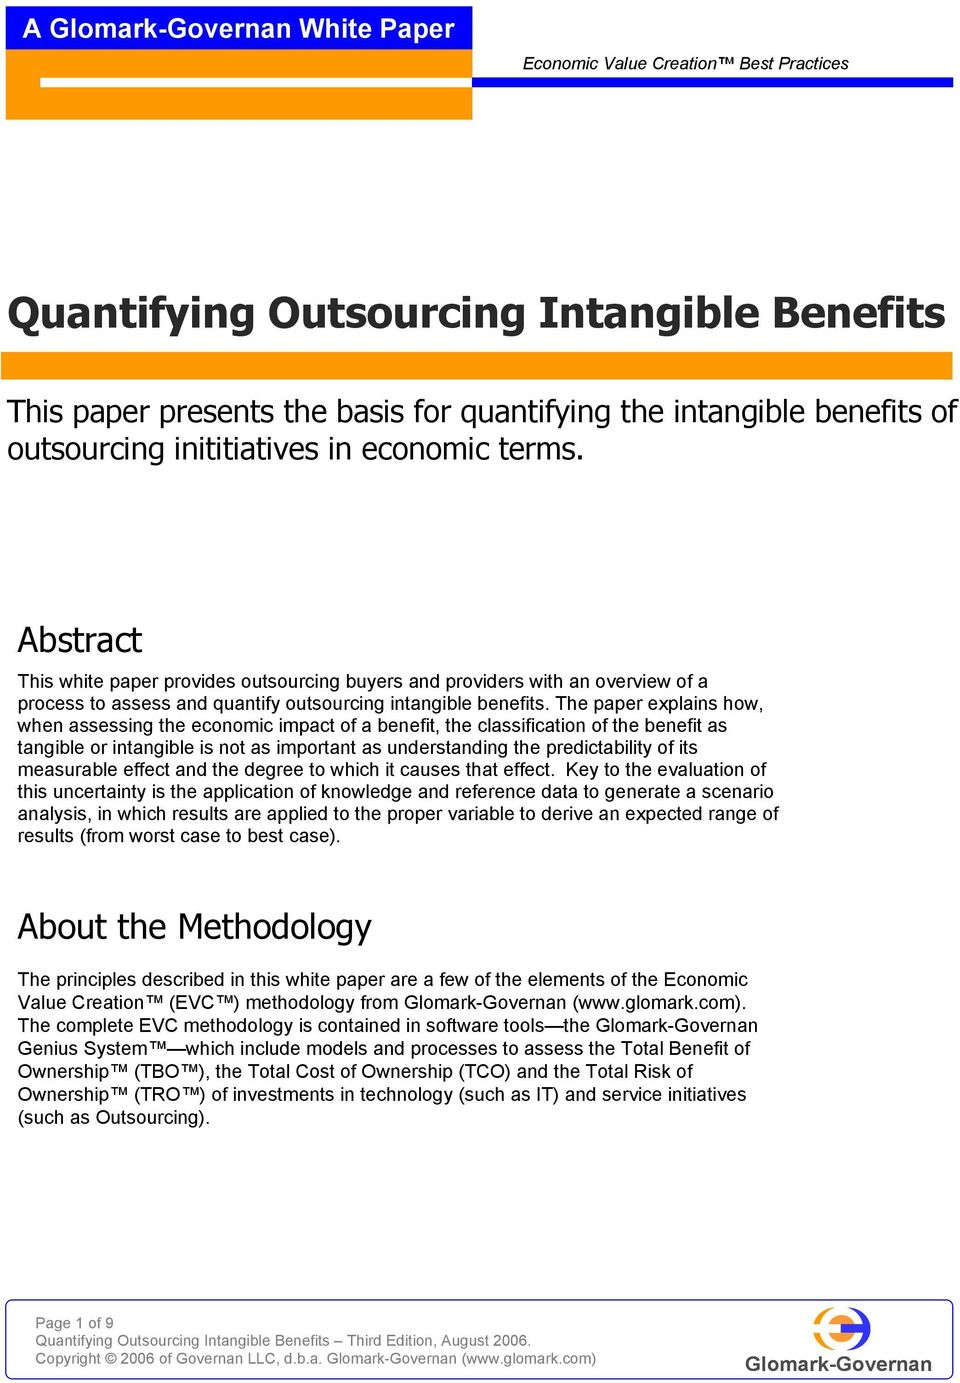 The paper explains how, when assessing the economic impact of a benefit, the classification of the benefit as tangible or intangible is not as important as understanding the predictability of its